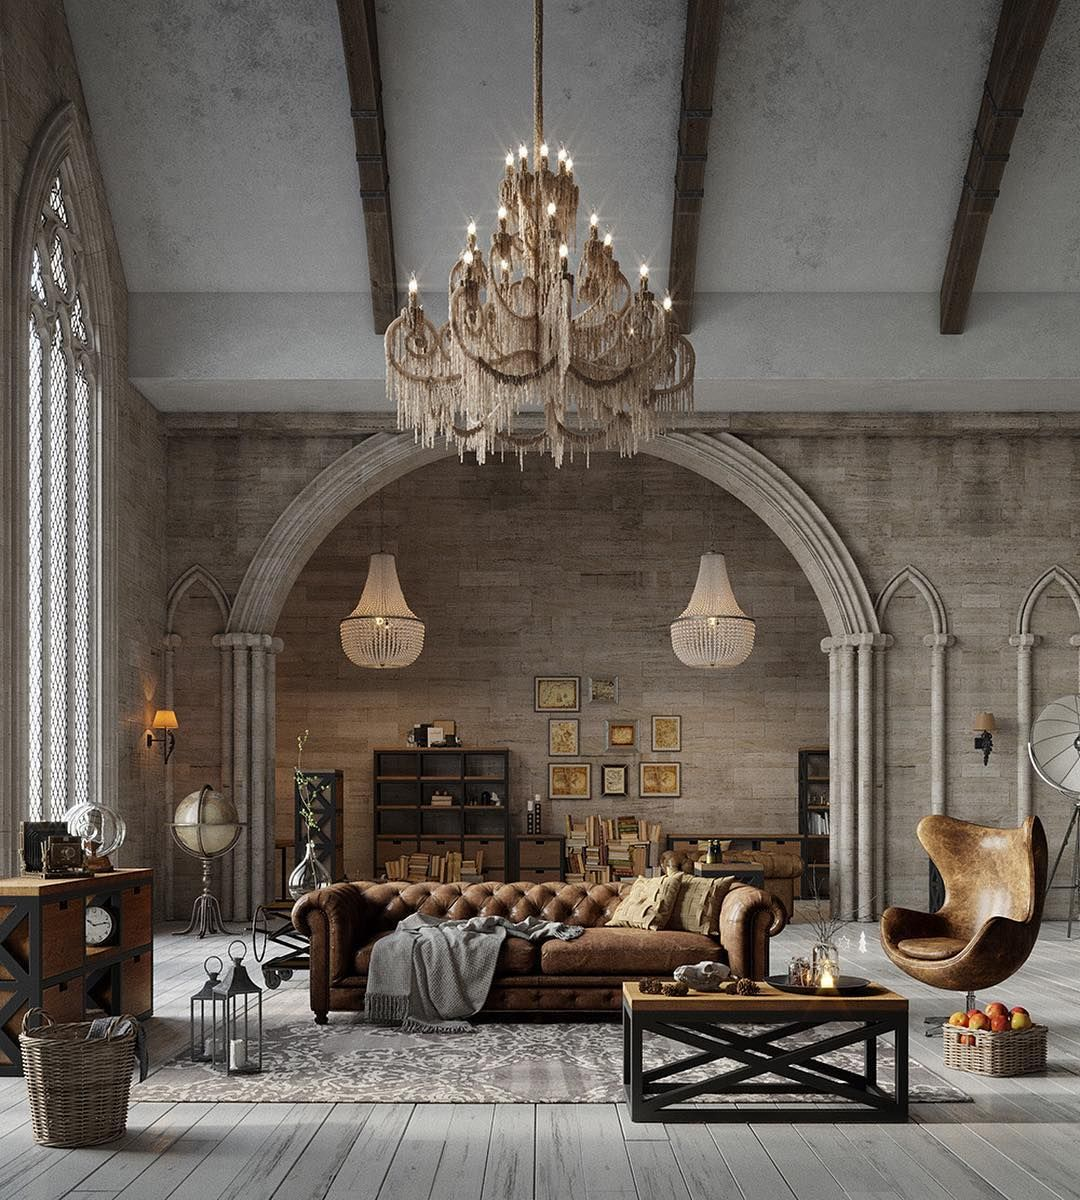 24 Classy Masculine Living Room Design Ideas With Rustic Style